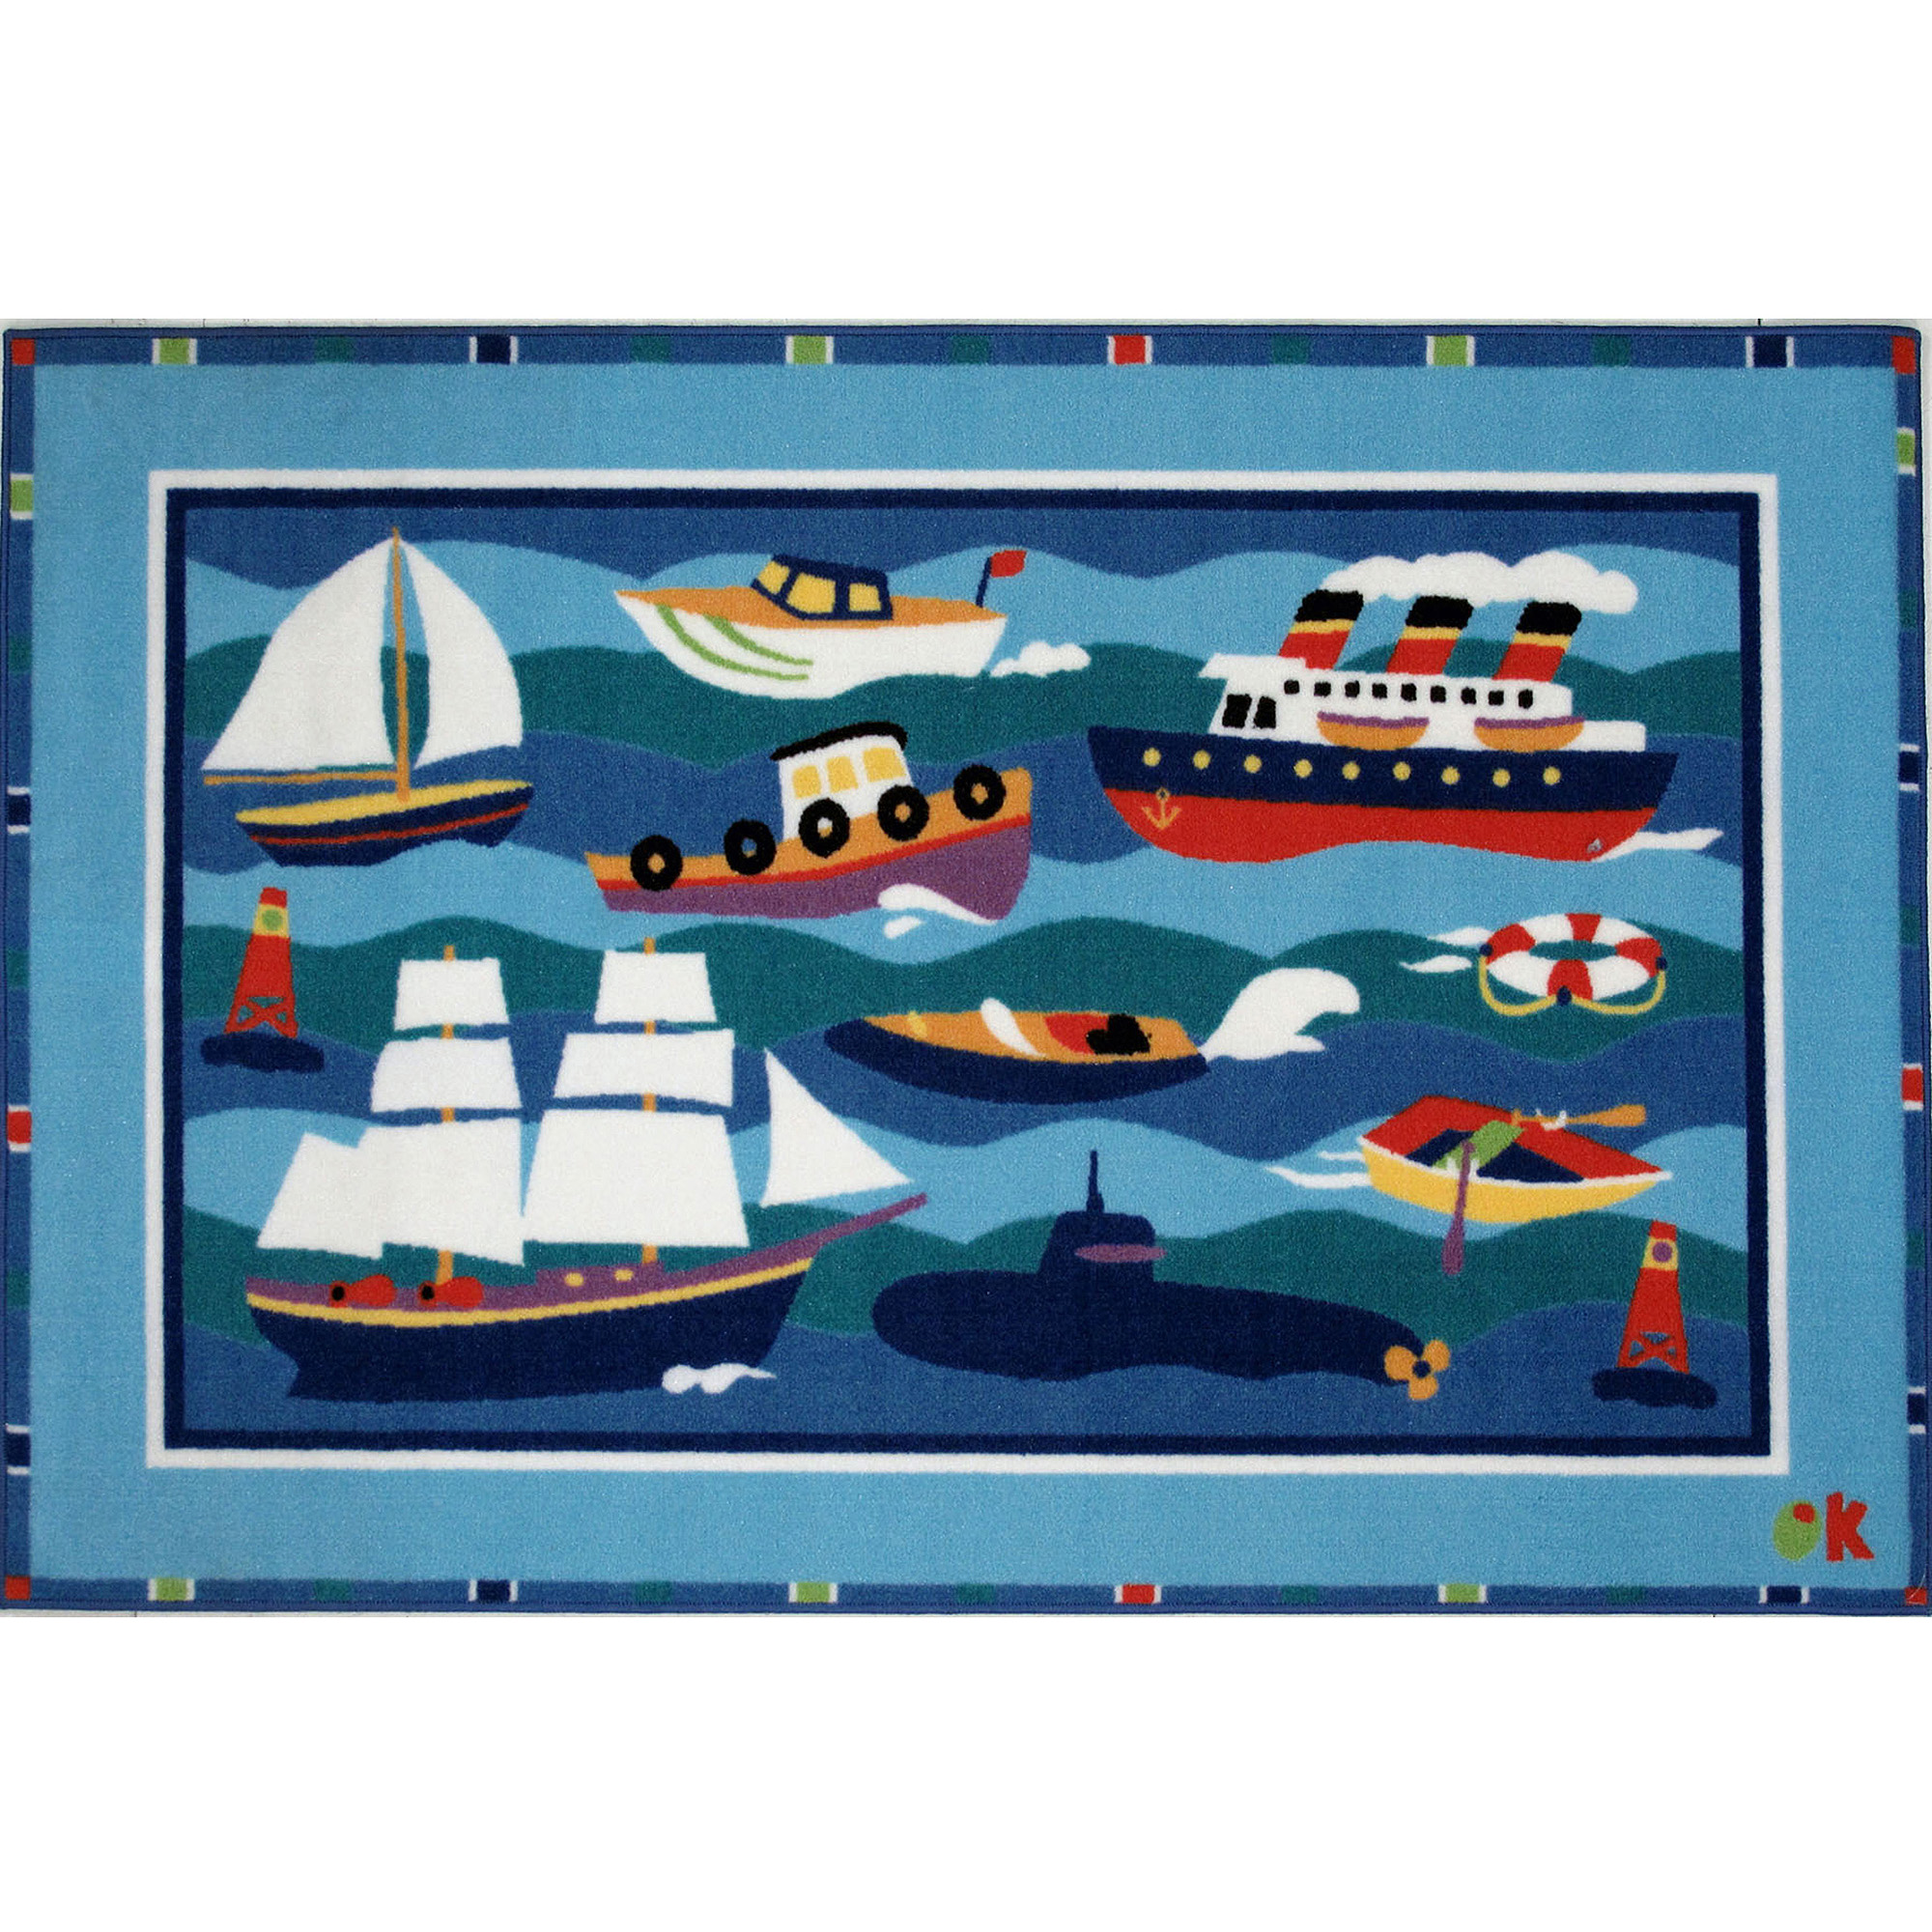 "Fun Rugs Olive Kids Boats & Bouys 19"" x 29"" Rug"